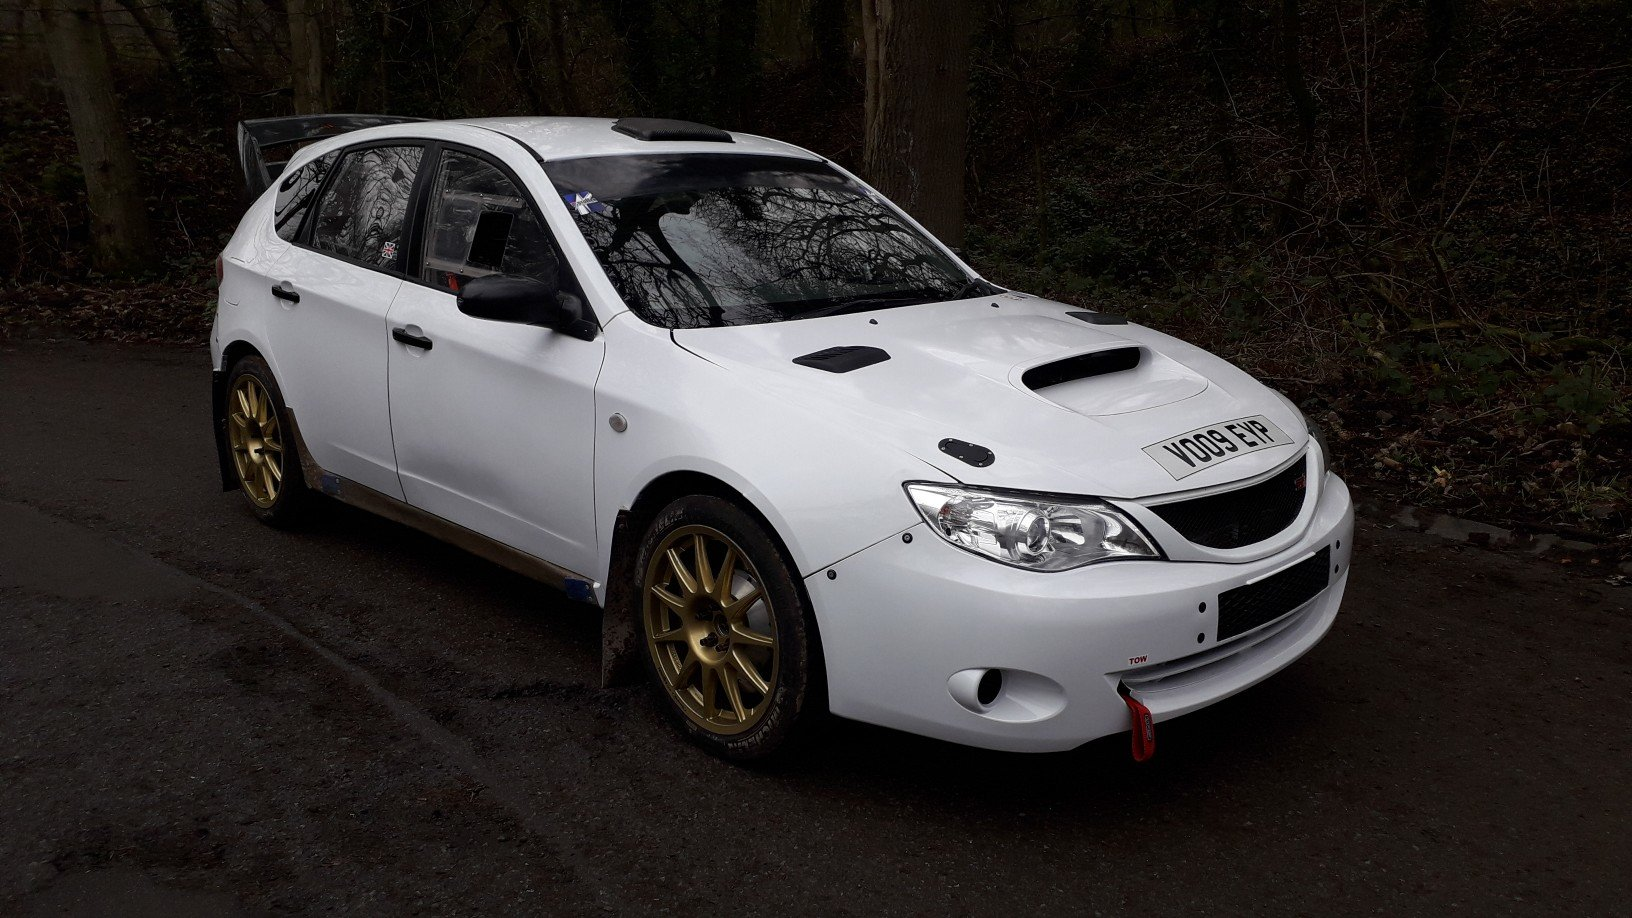 2009 subaru impreza n14 rally car full msa legal ready to rally  For Sale (picture 3 of 6)